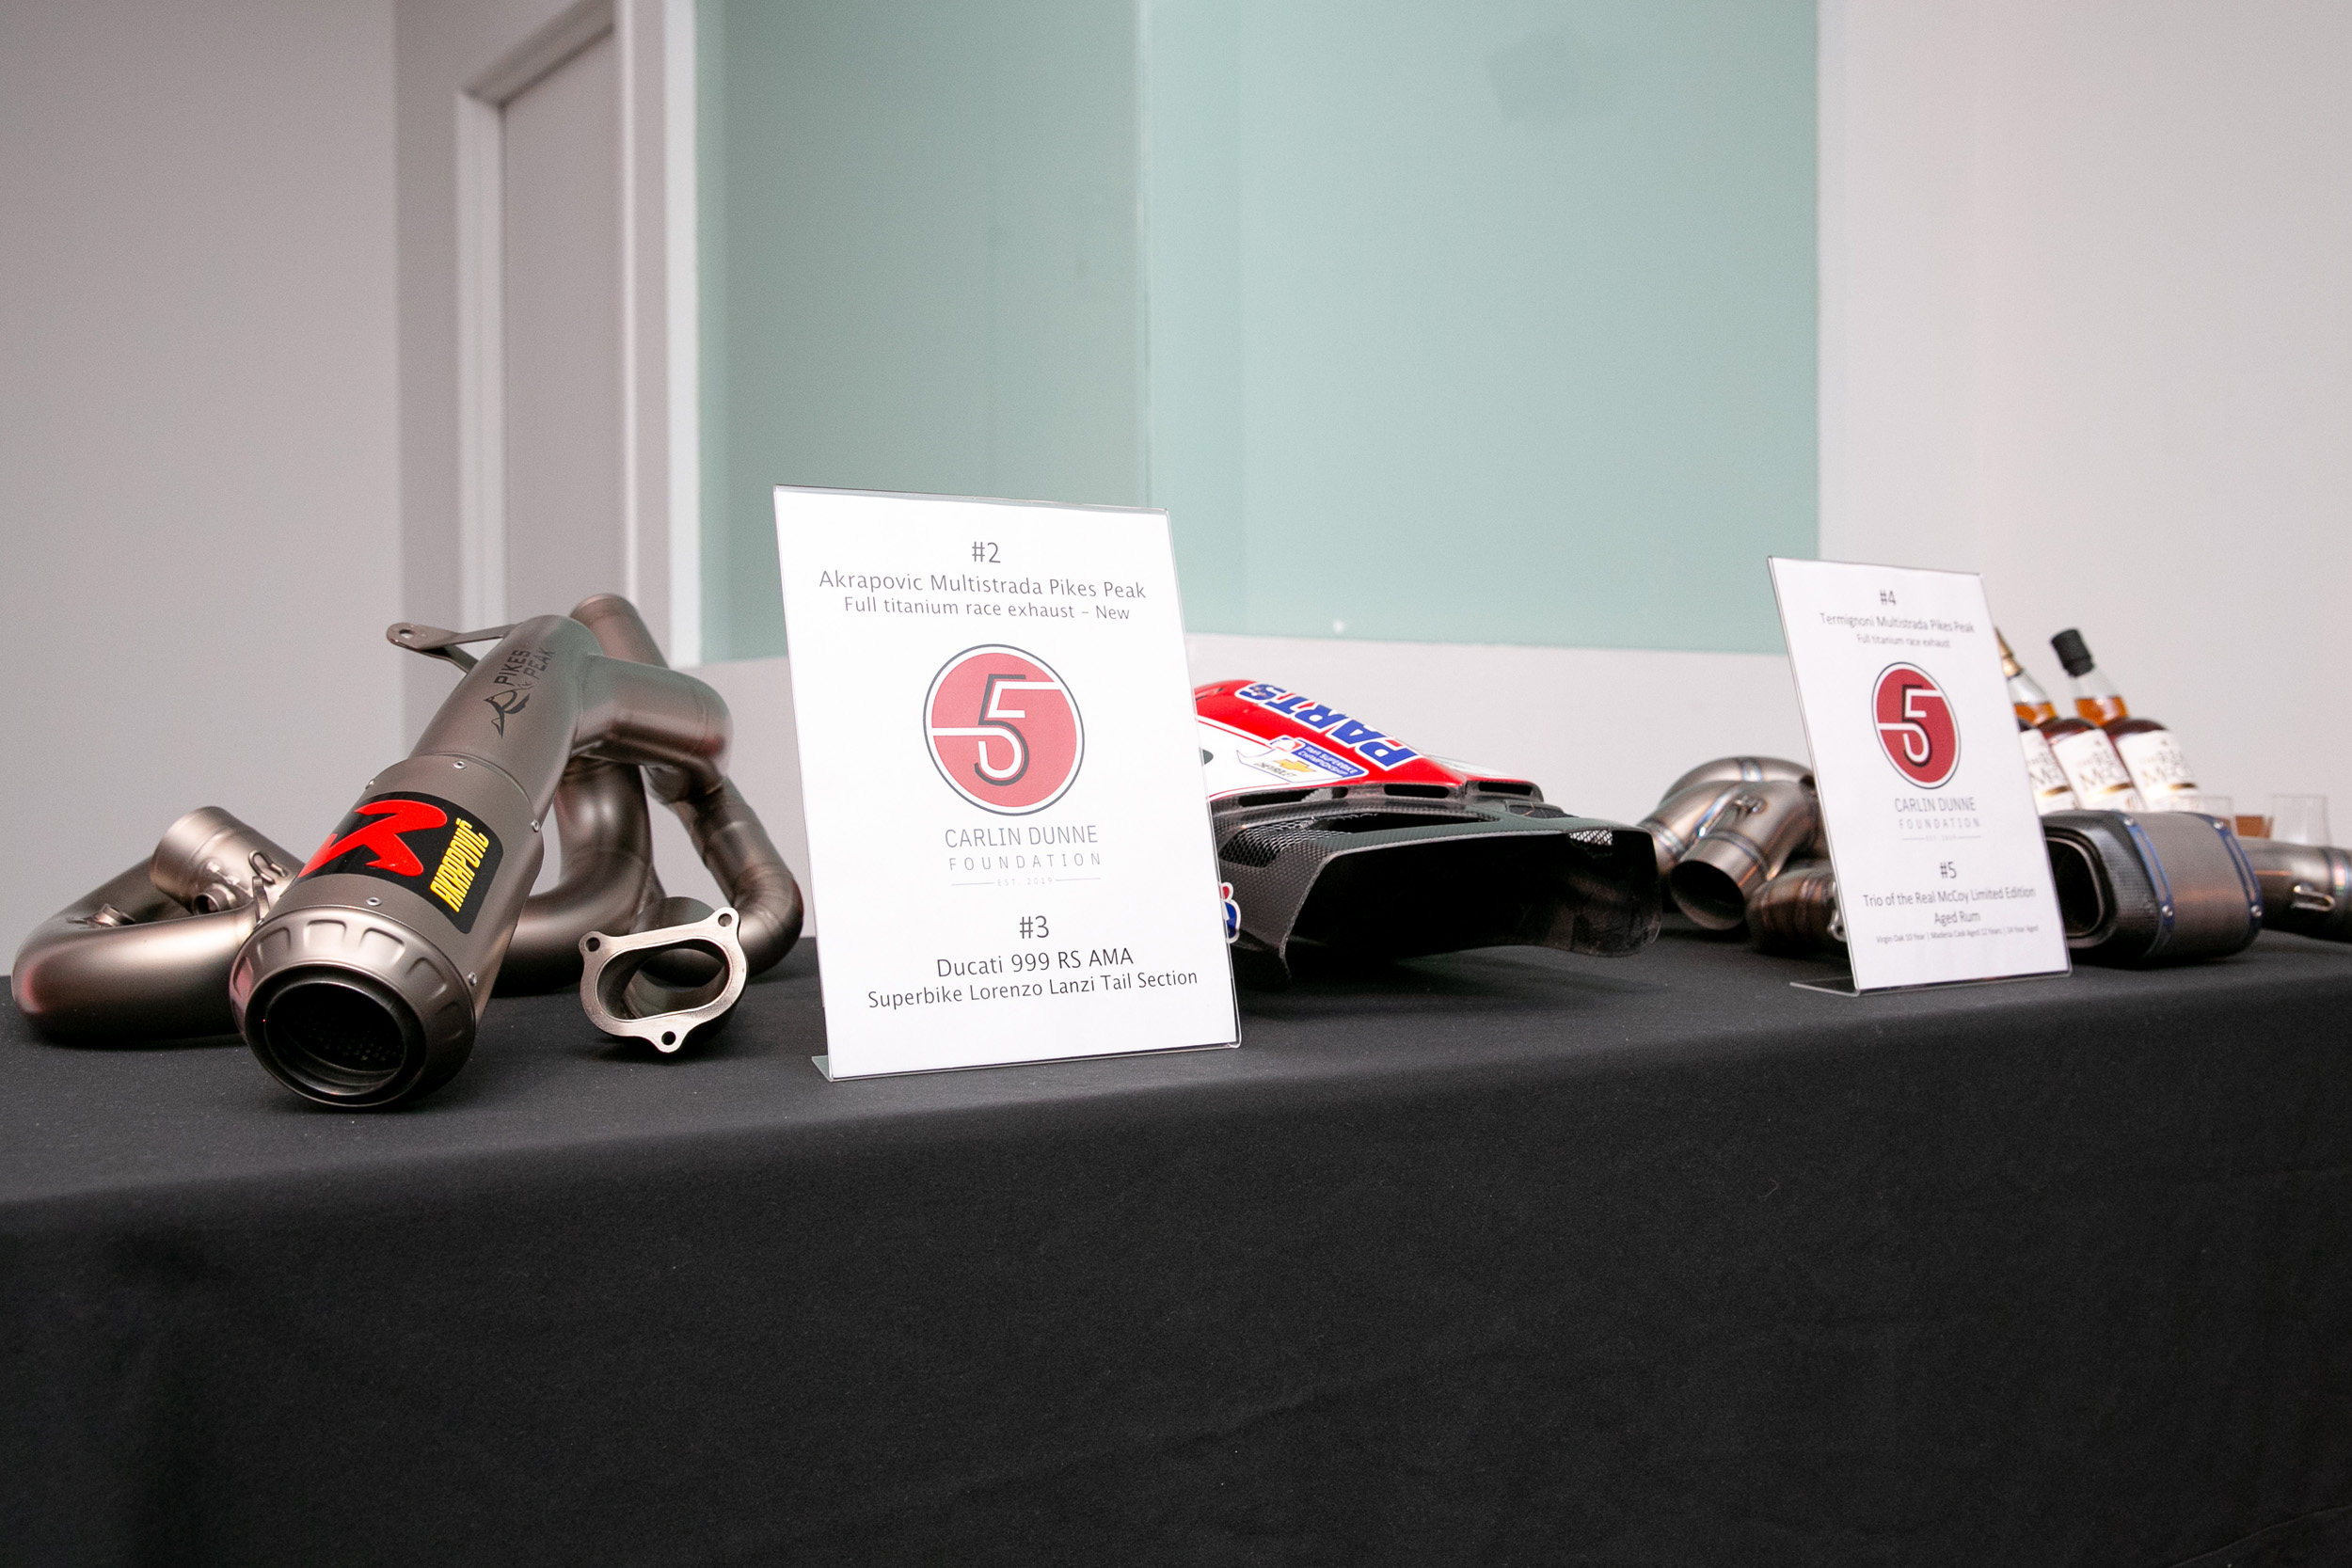 191210 Ducati North America Raises Funds for Carlin Dunne Foundation With Successful Charity Auction [8]